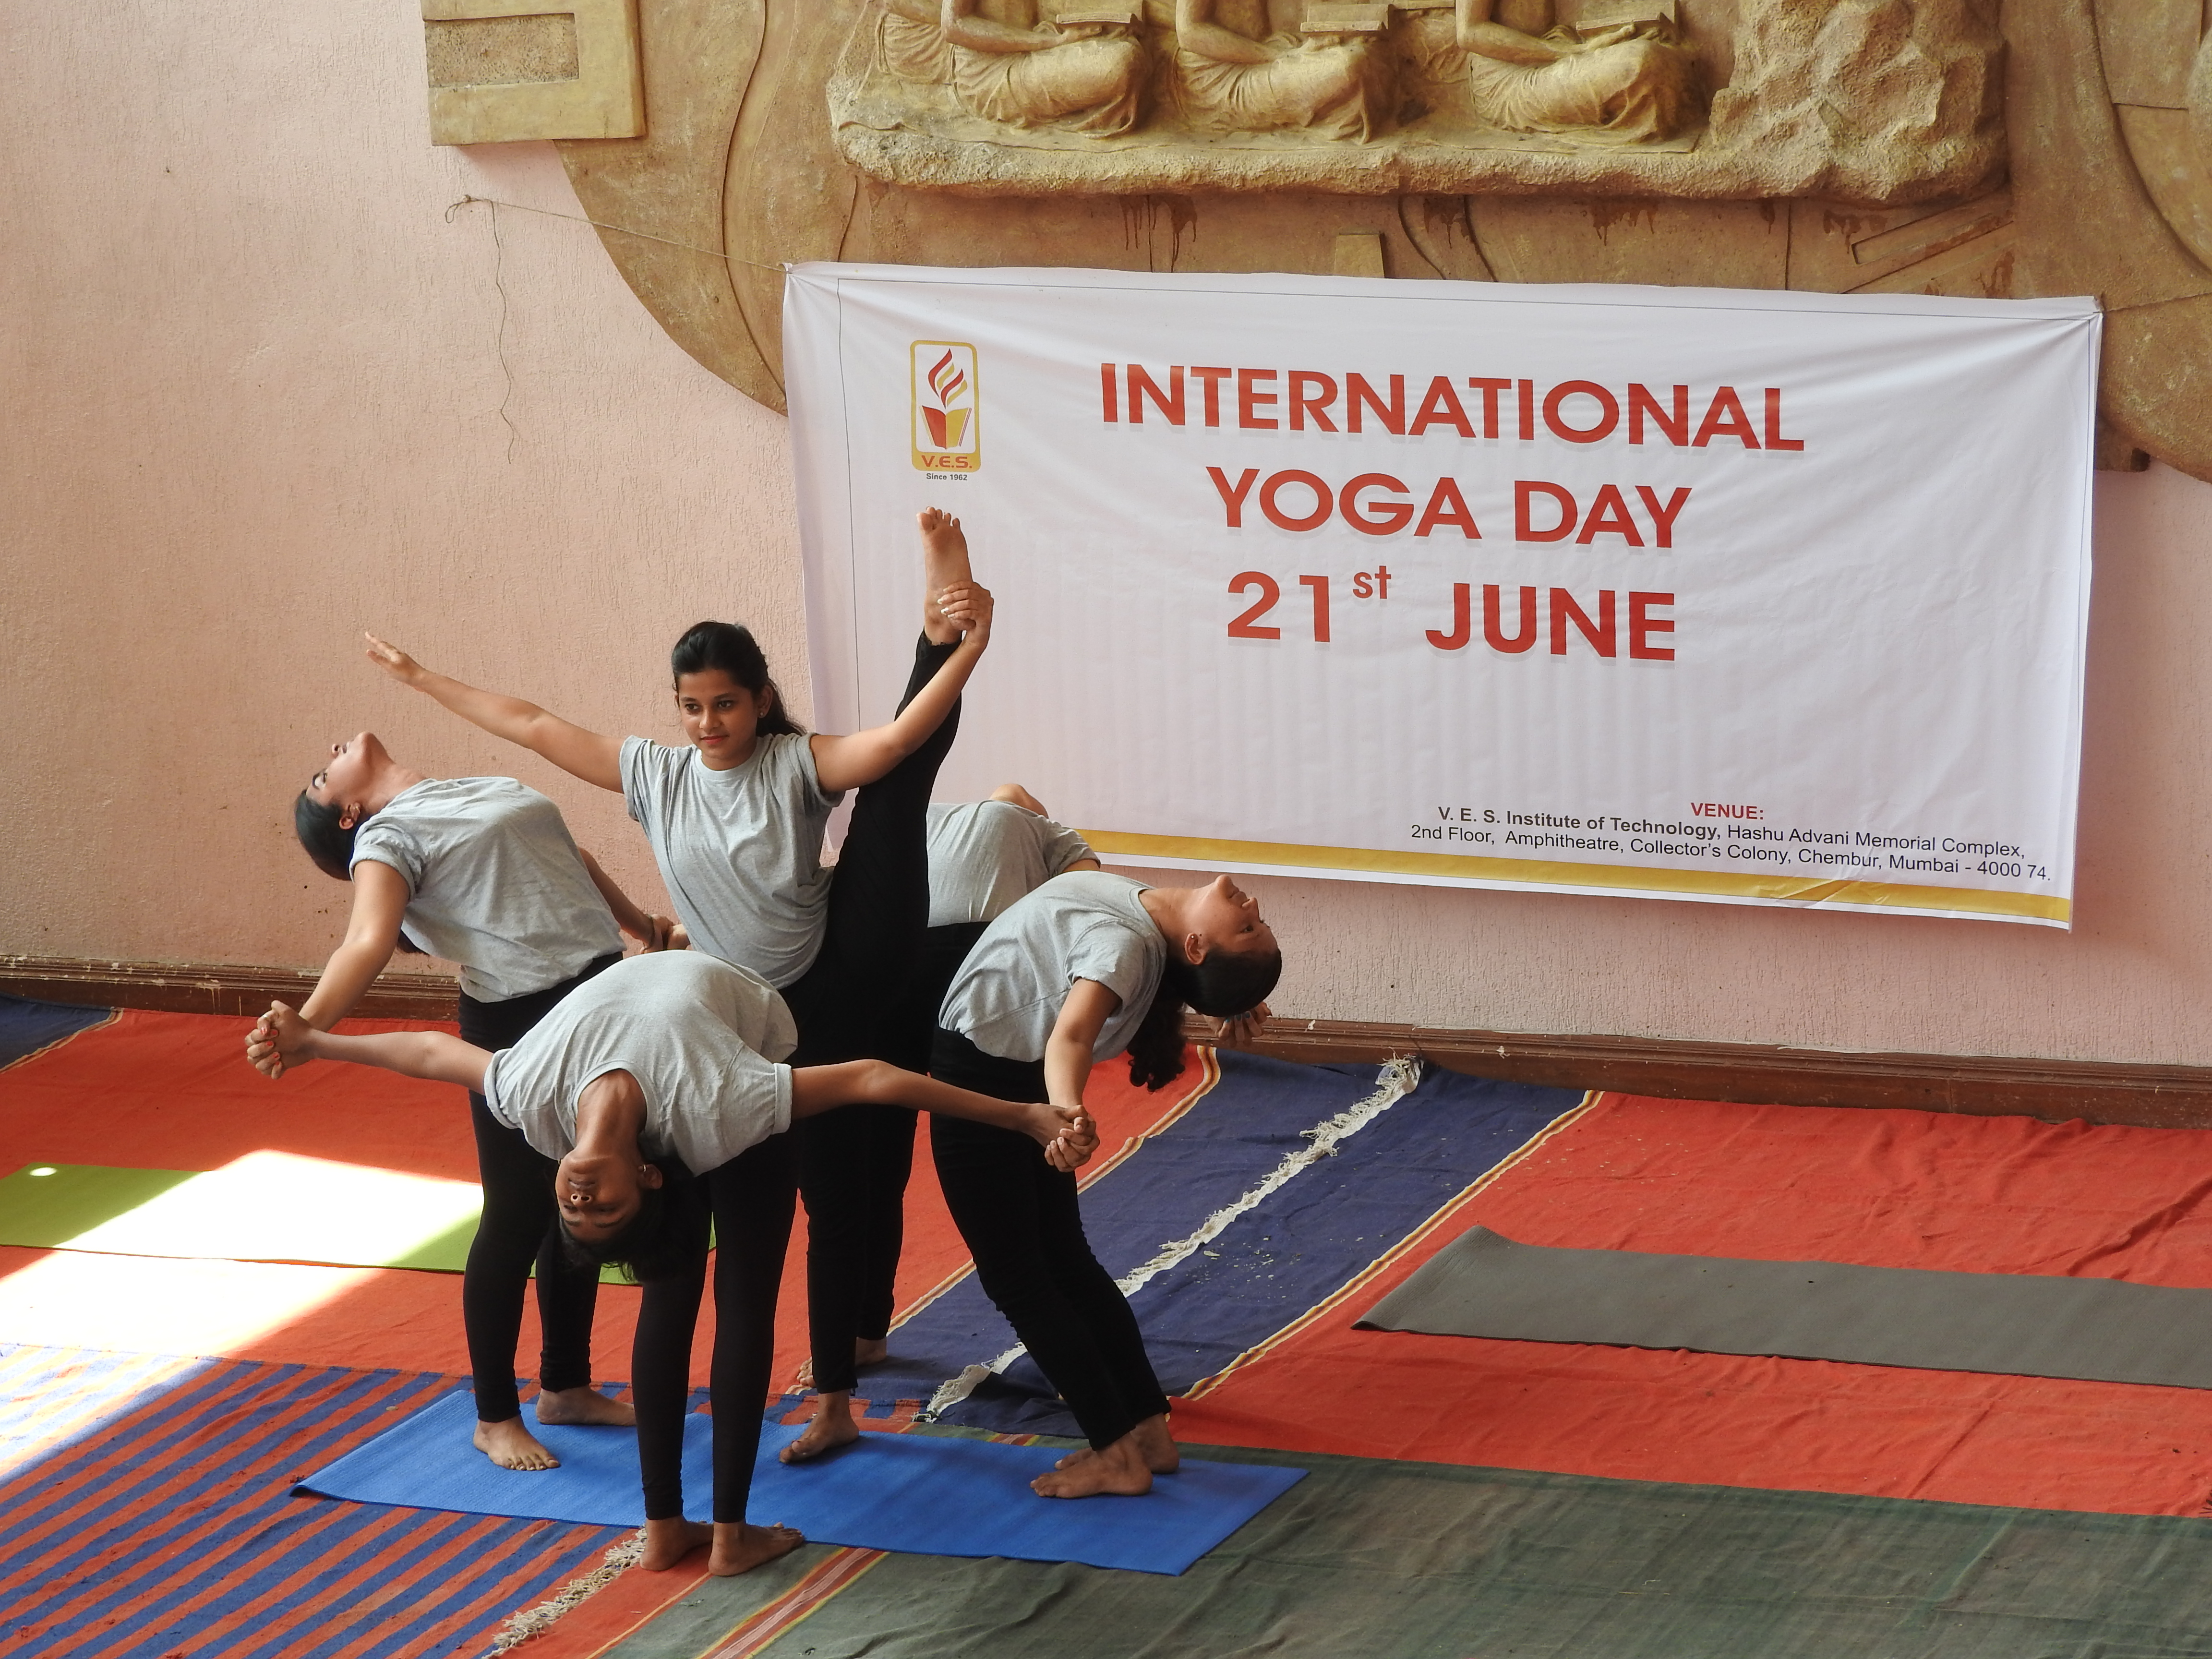 VESIT International Yoga Day